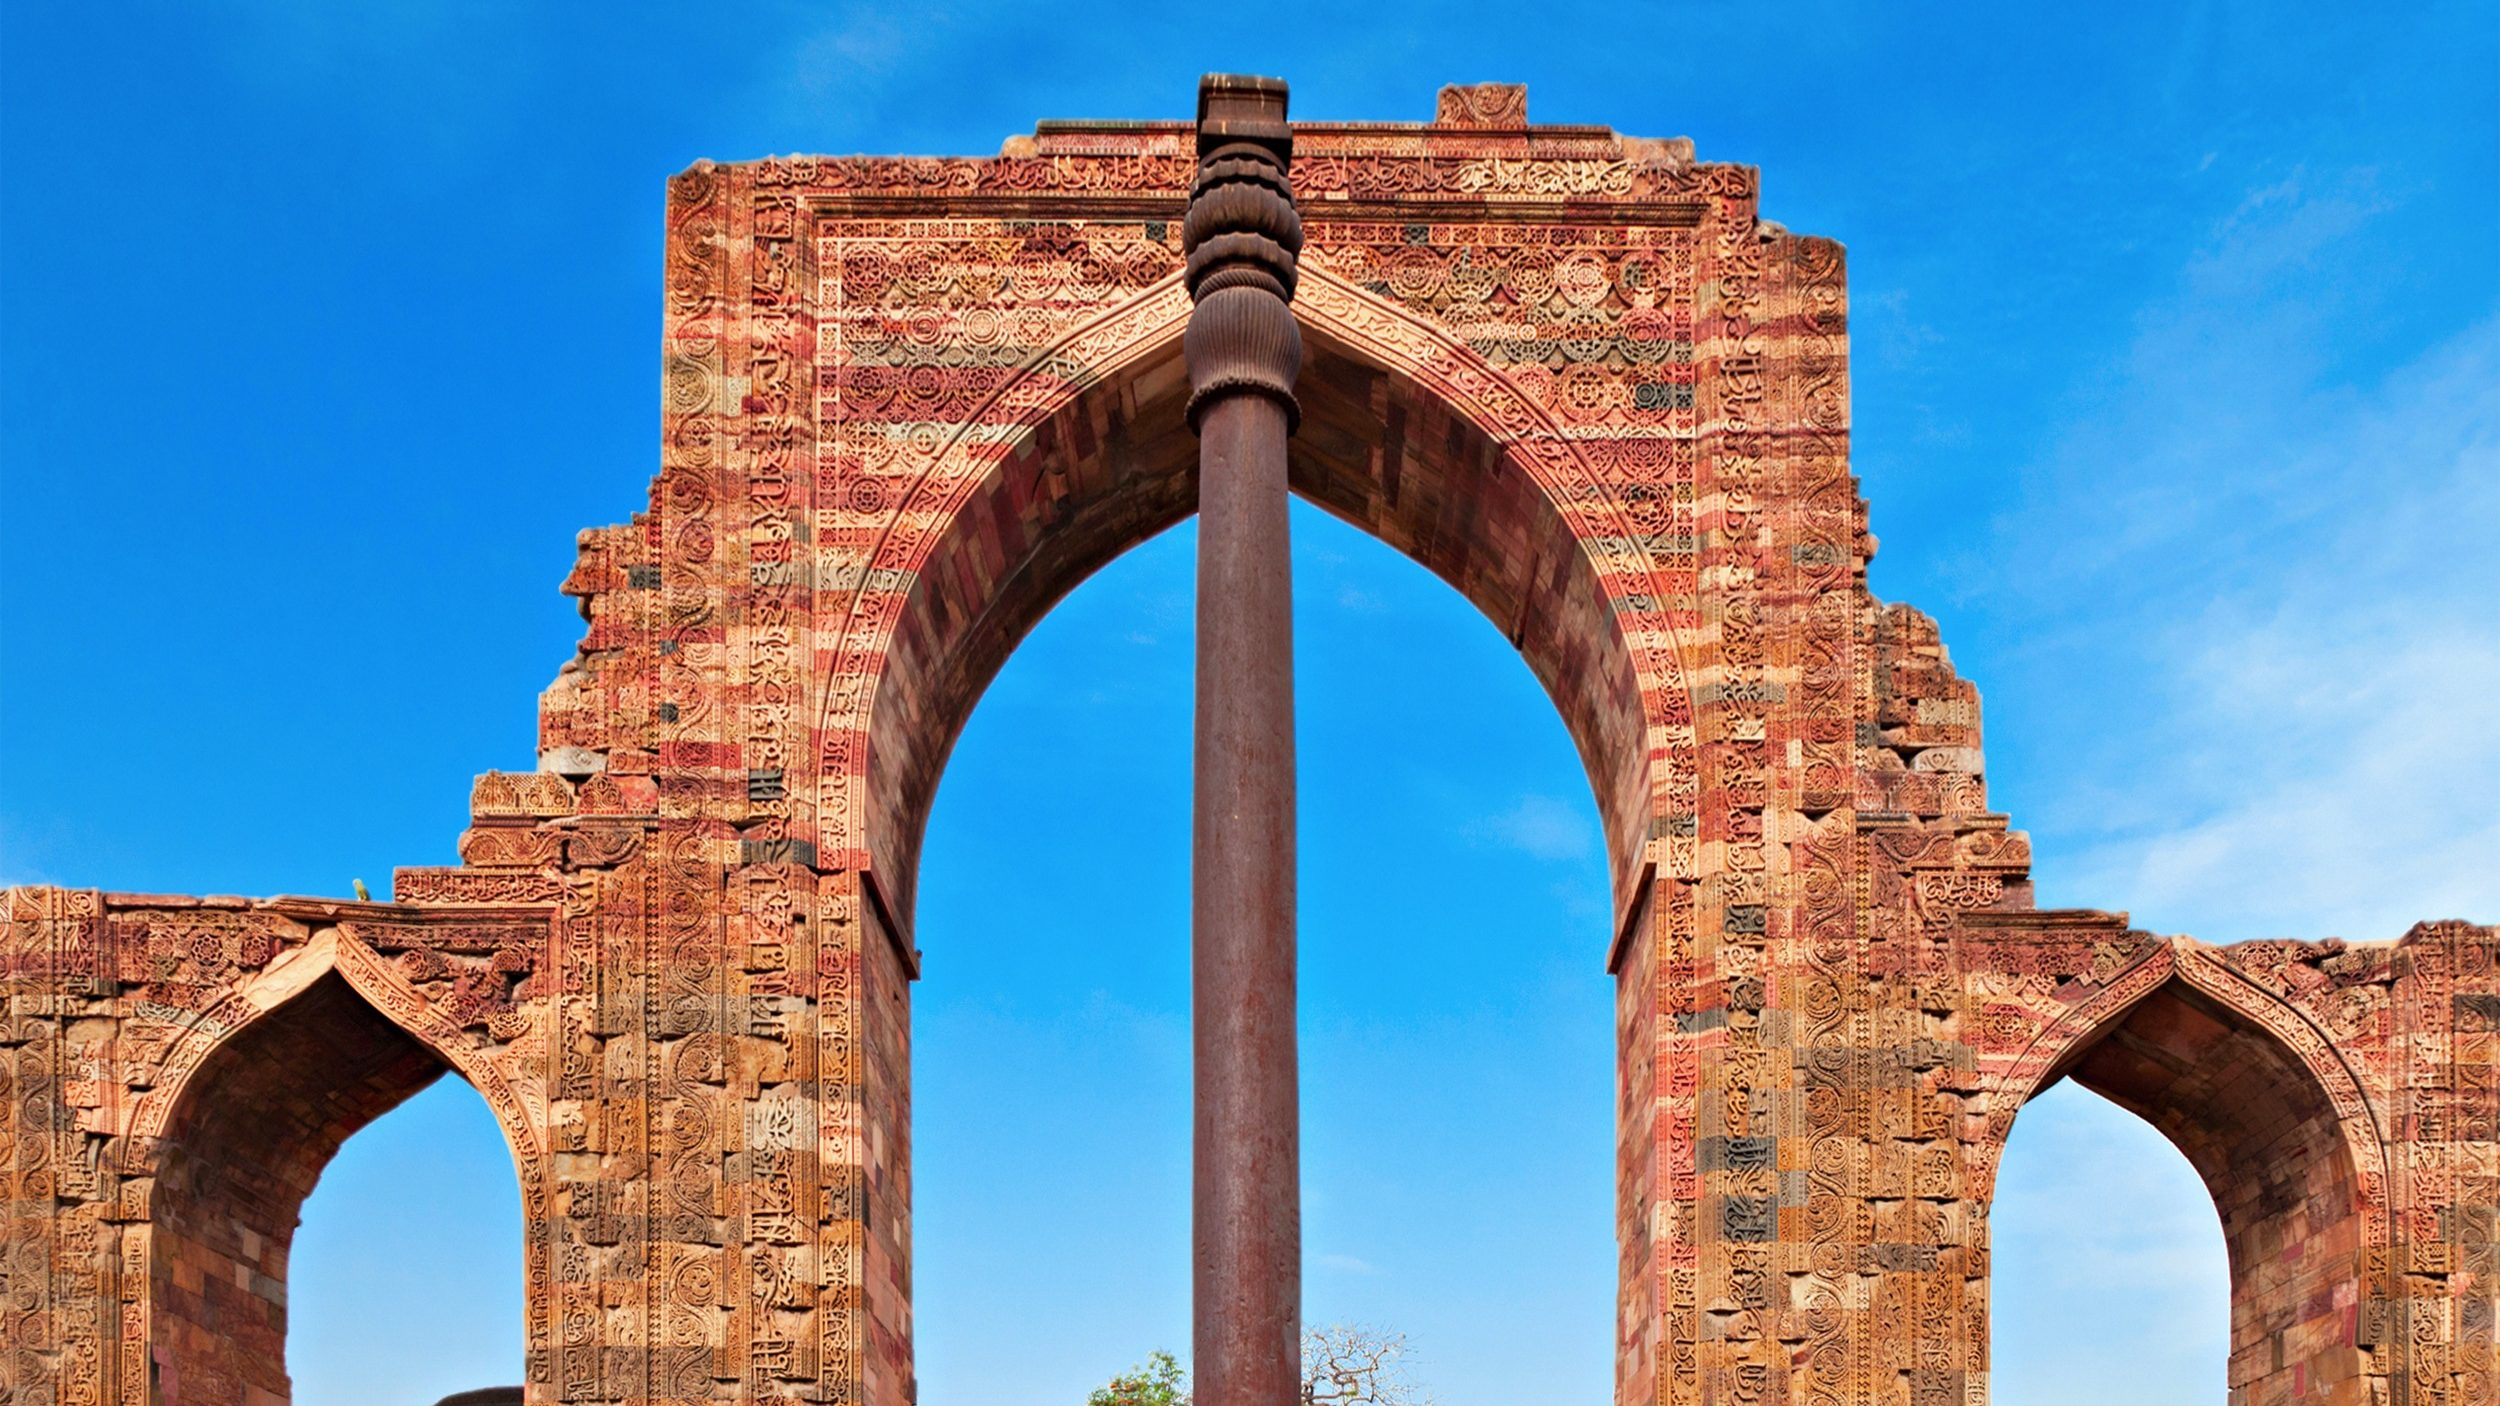 Why Has This 1600 Year Old Pillar in India Never Rusted?